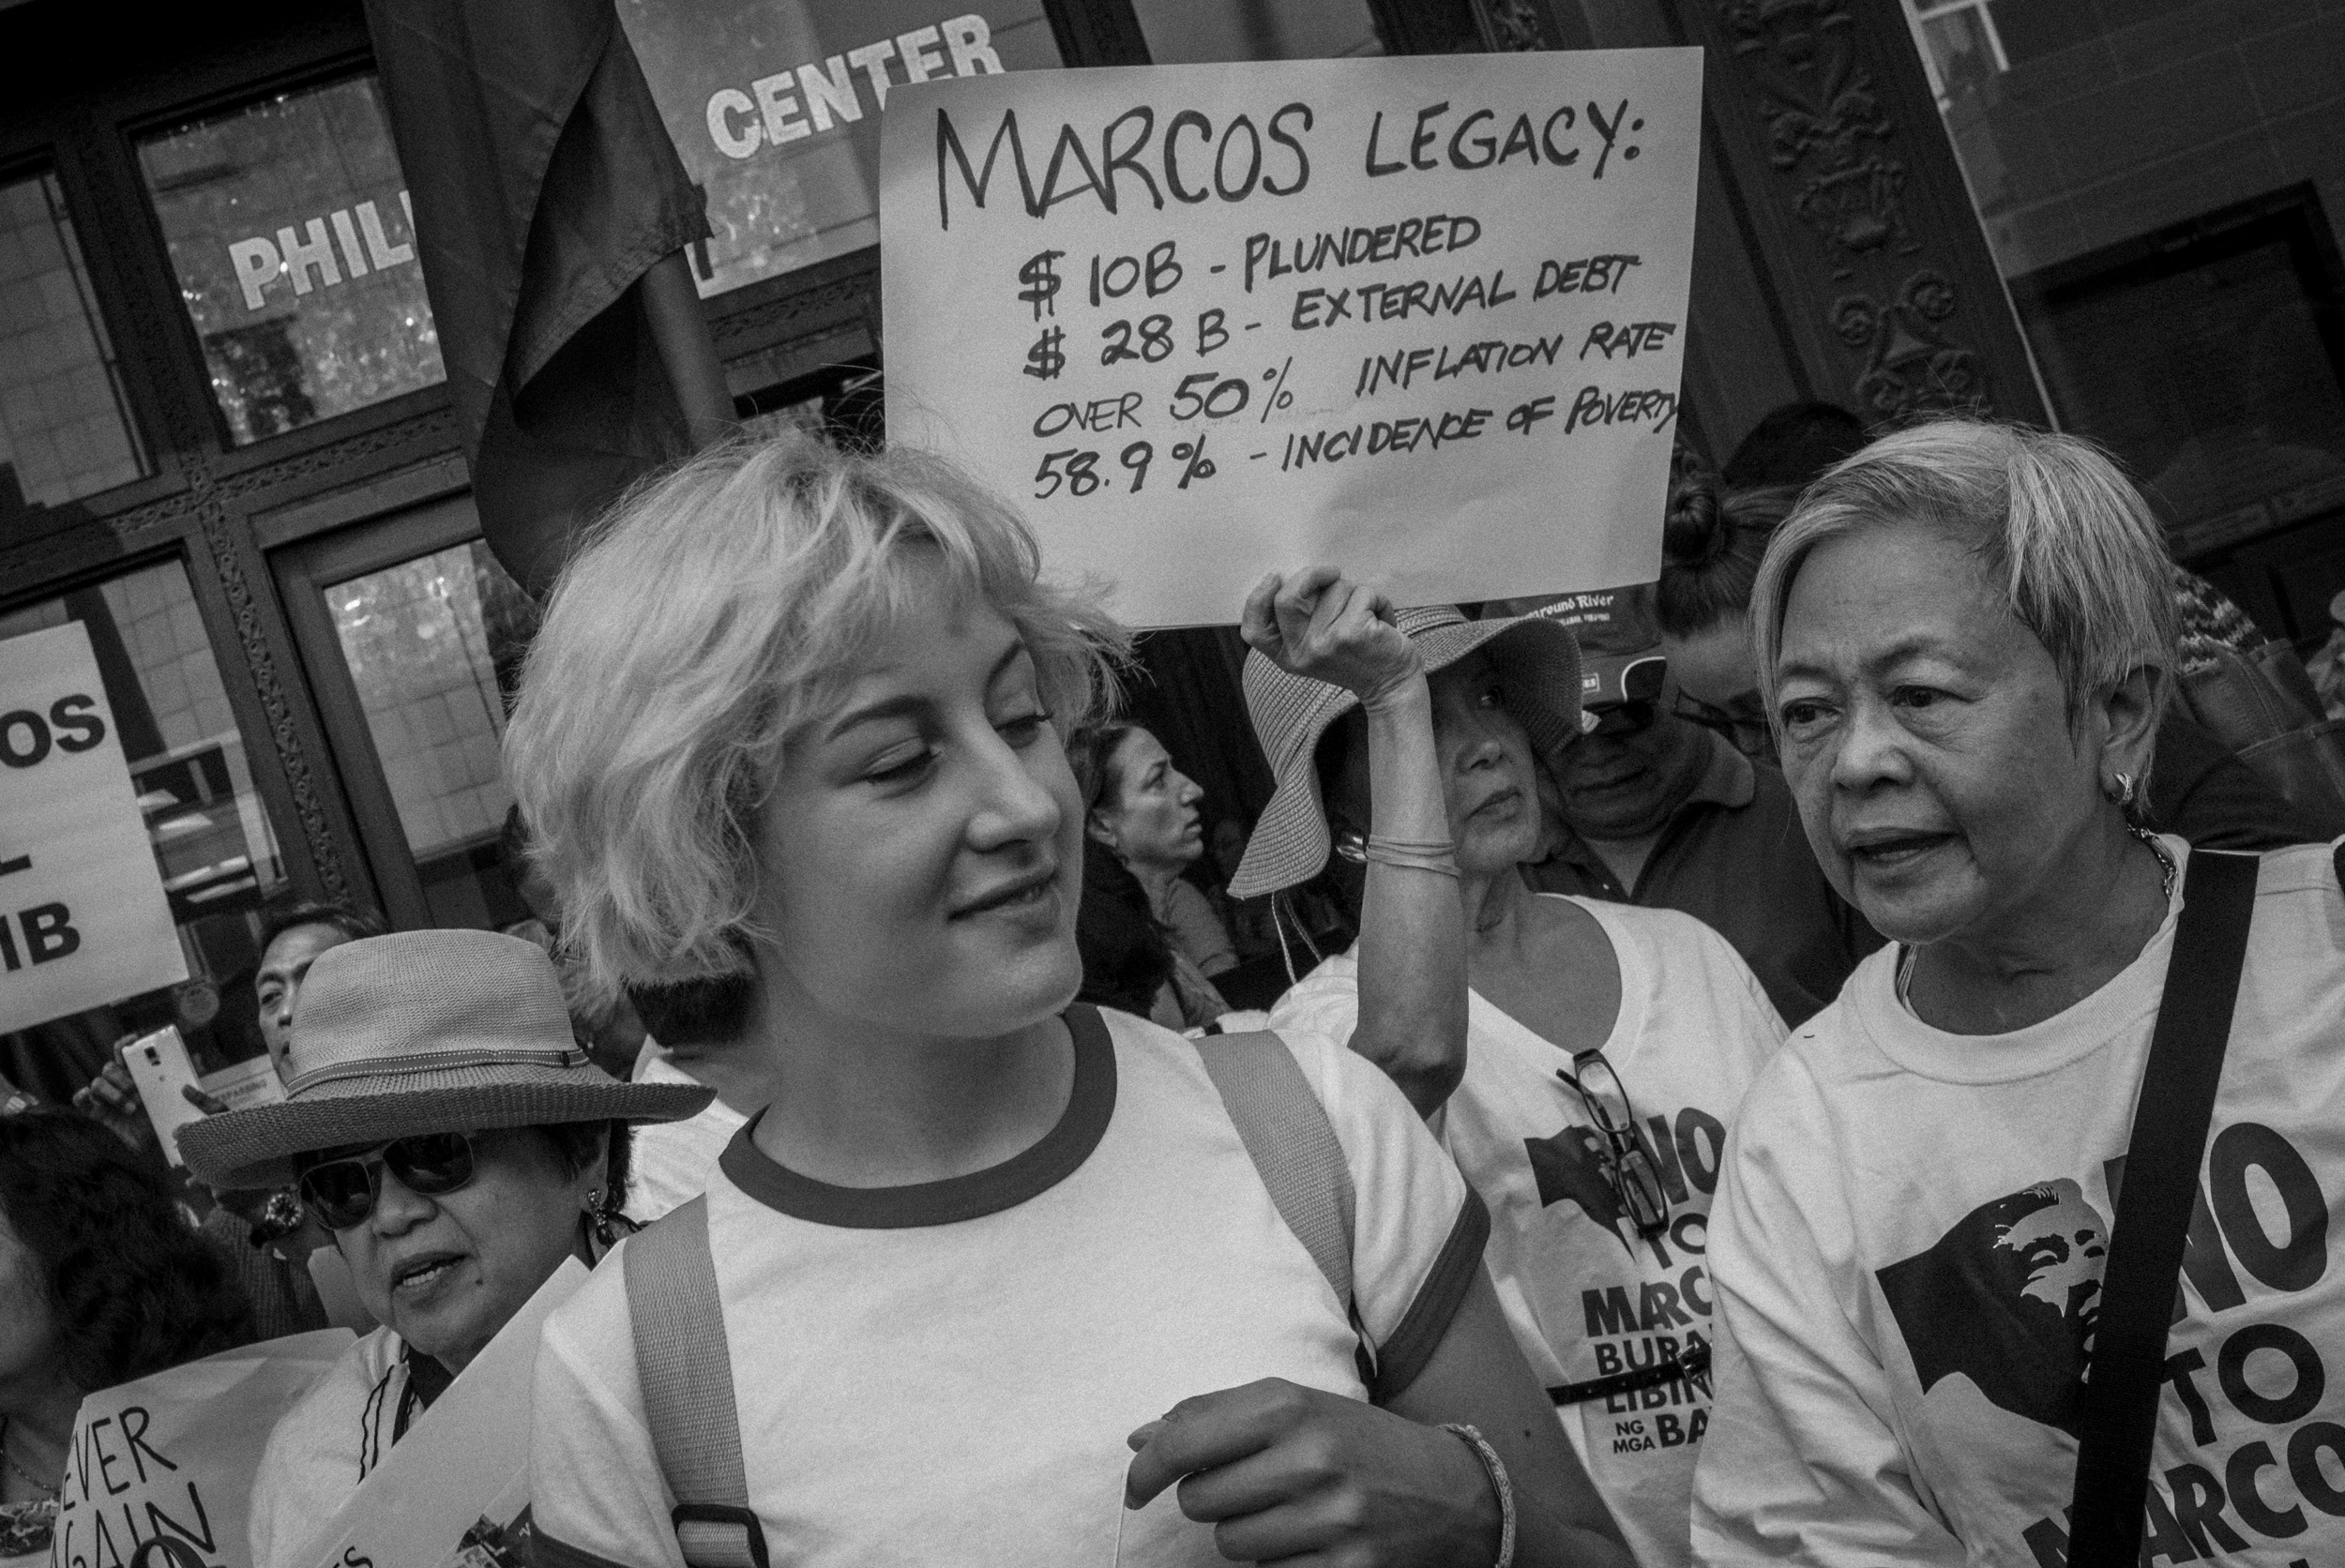 MOTHERS AND DAUGHTERS. Lorena (L), 17- year old daughter of Melinda Paras, who was named after Lorena Barrios, joined the protest together with Leni Marin and Thelma King. Photo by Rick Rocamora